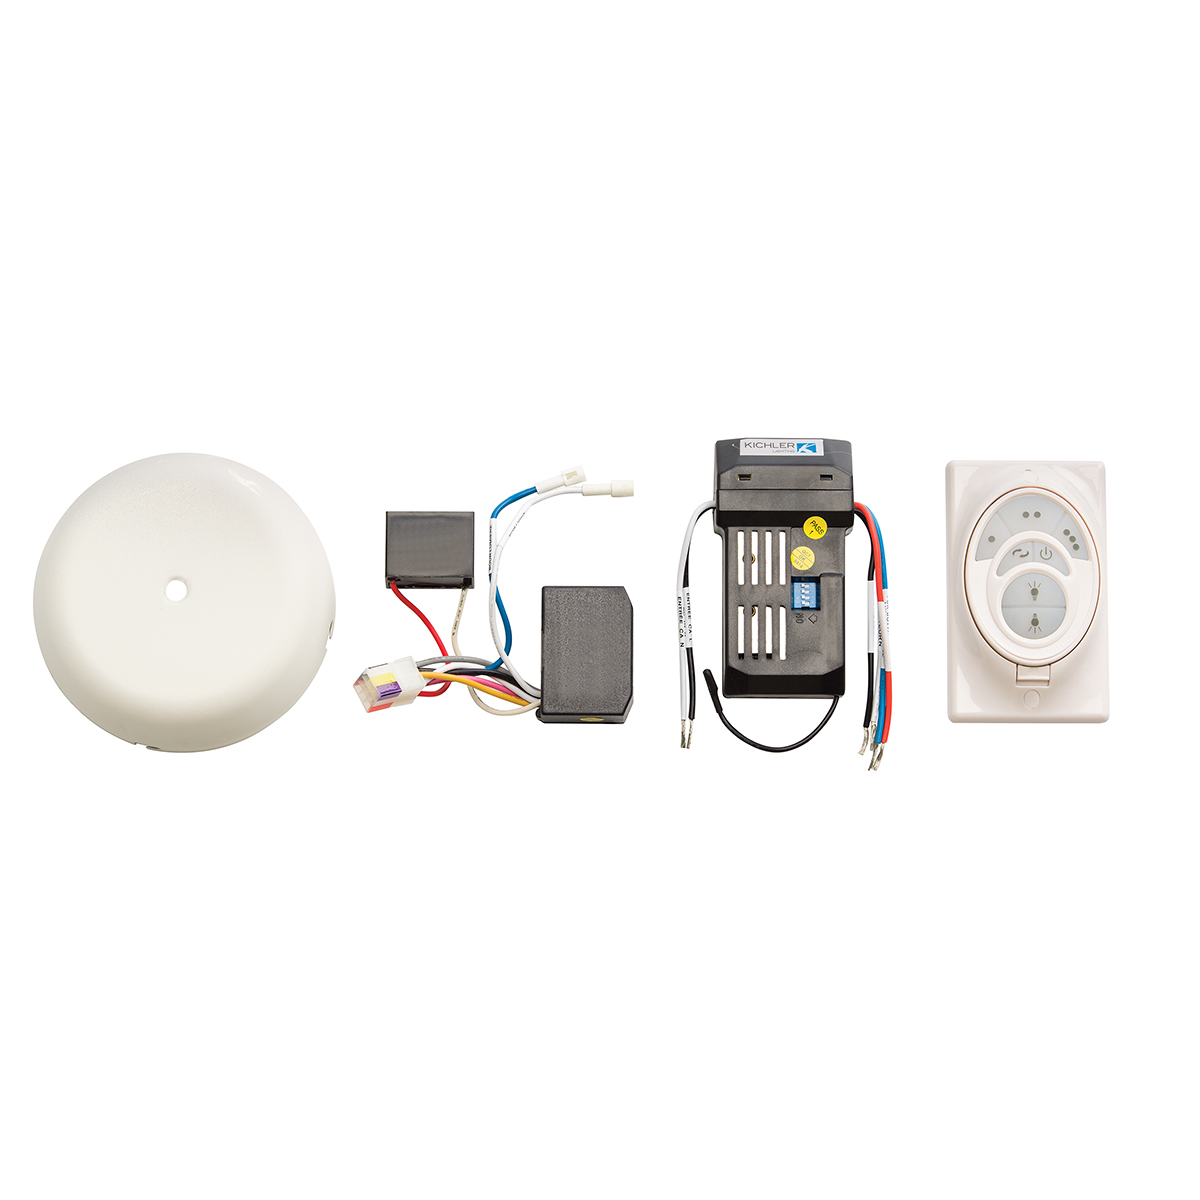 CoolTouch Control System R400 from the Accessory collection by Kichler 3R400NBR